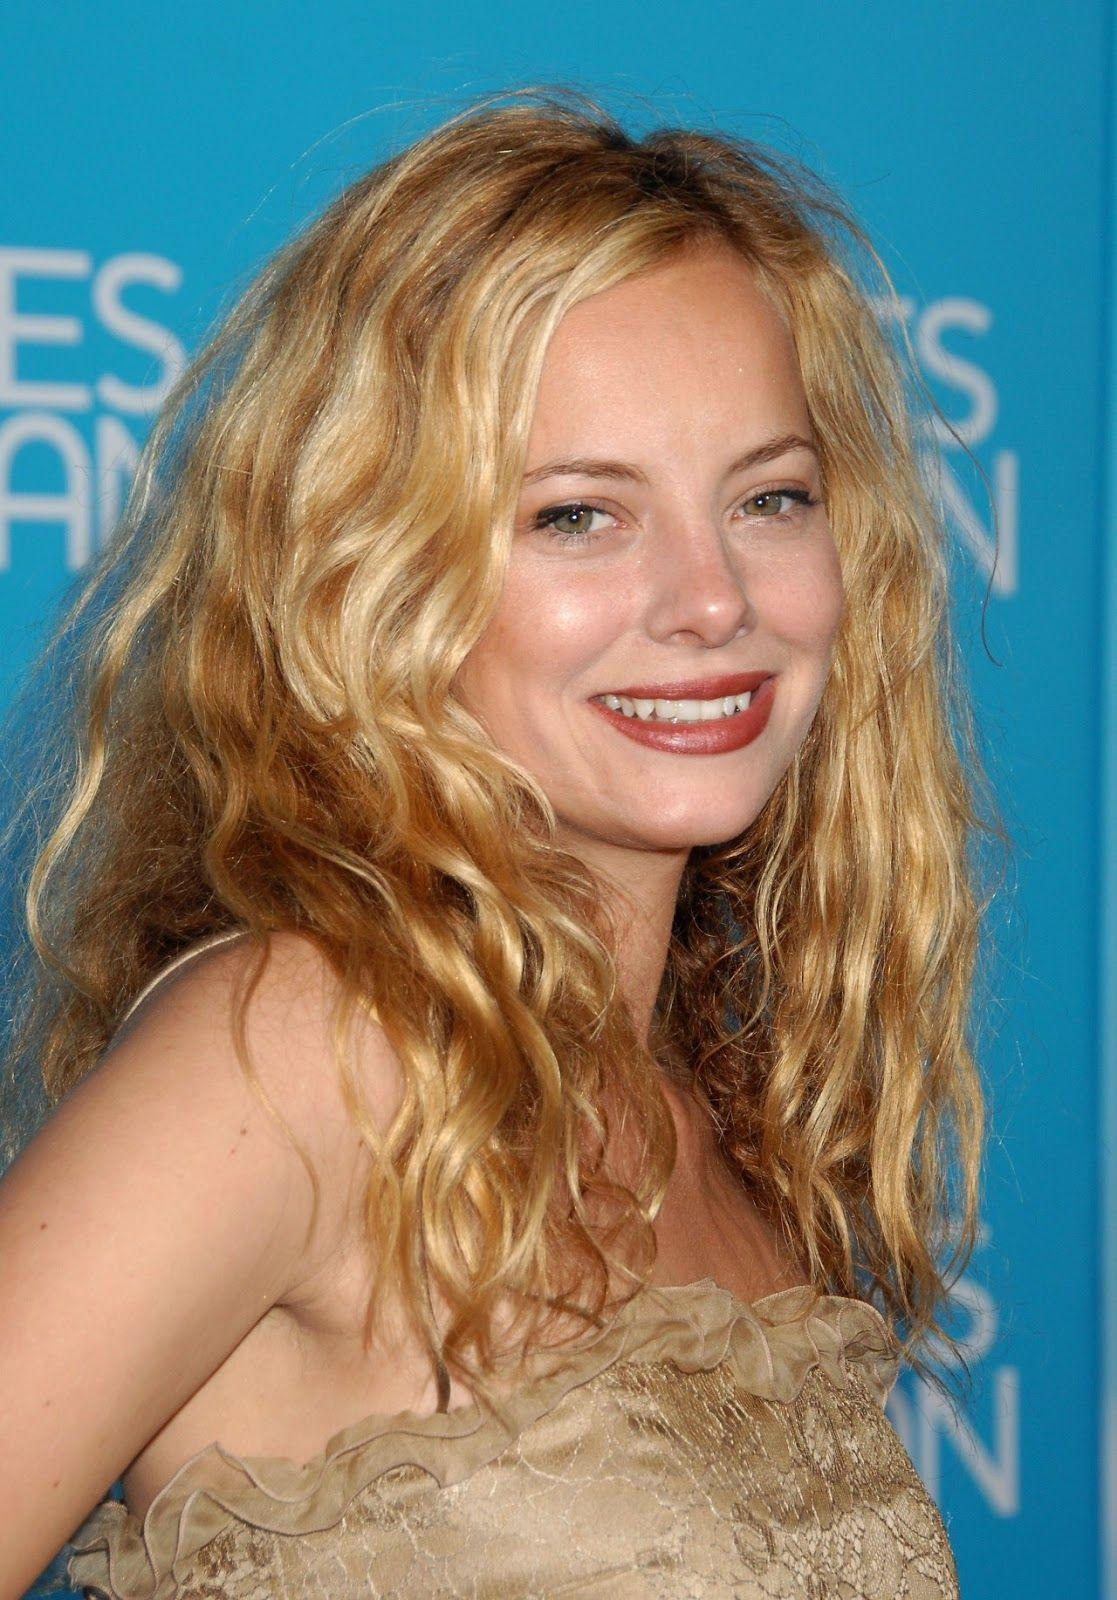 Hollywood Actress Wallpaper: Bijou Phillips Wallpapers